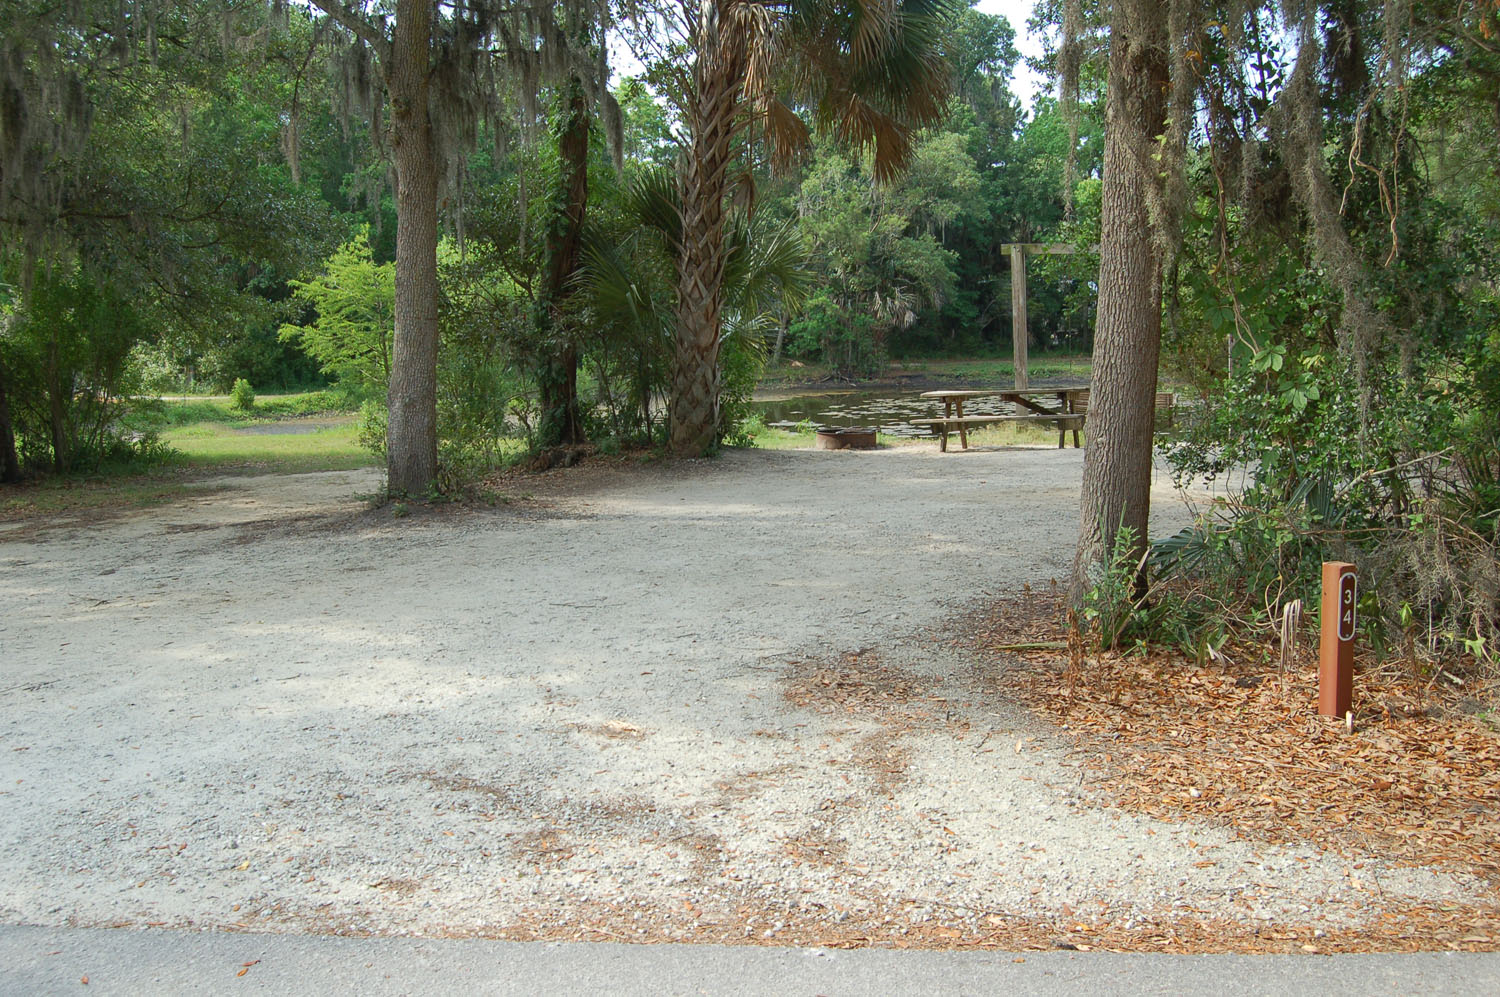 Image of campsite #34 at the Campground at James Island County Park